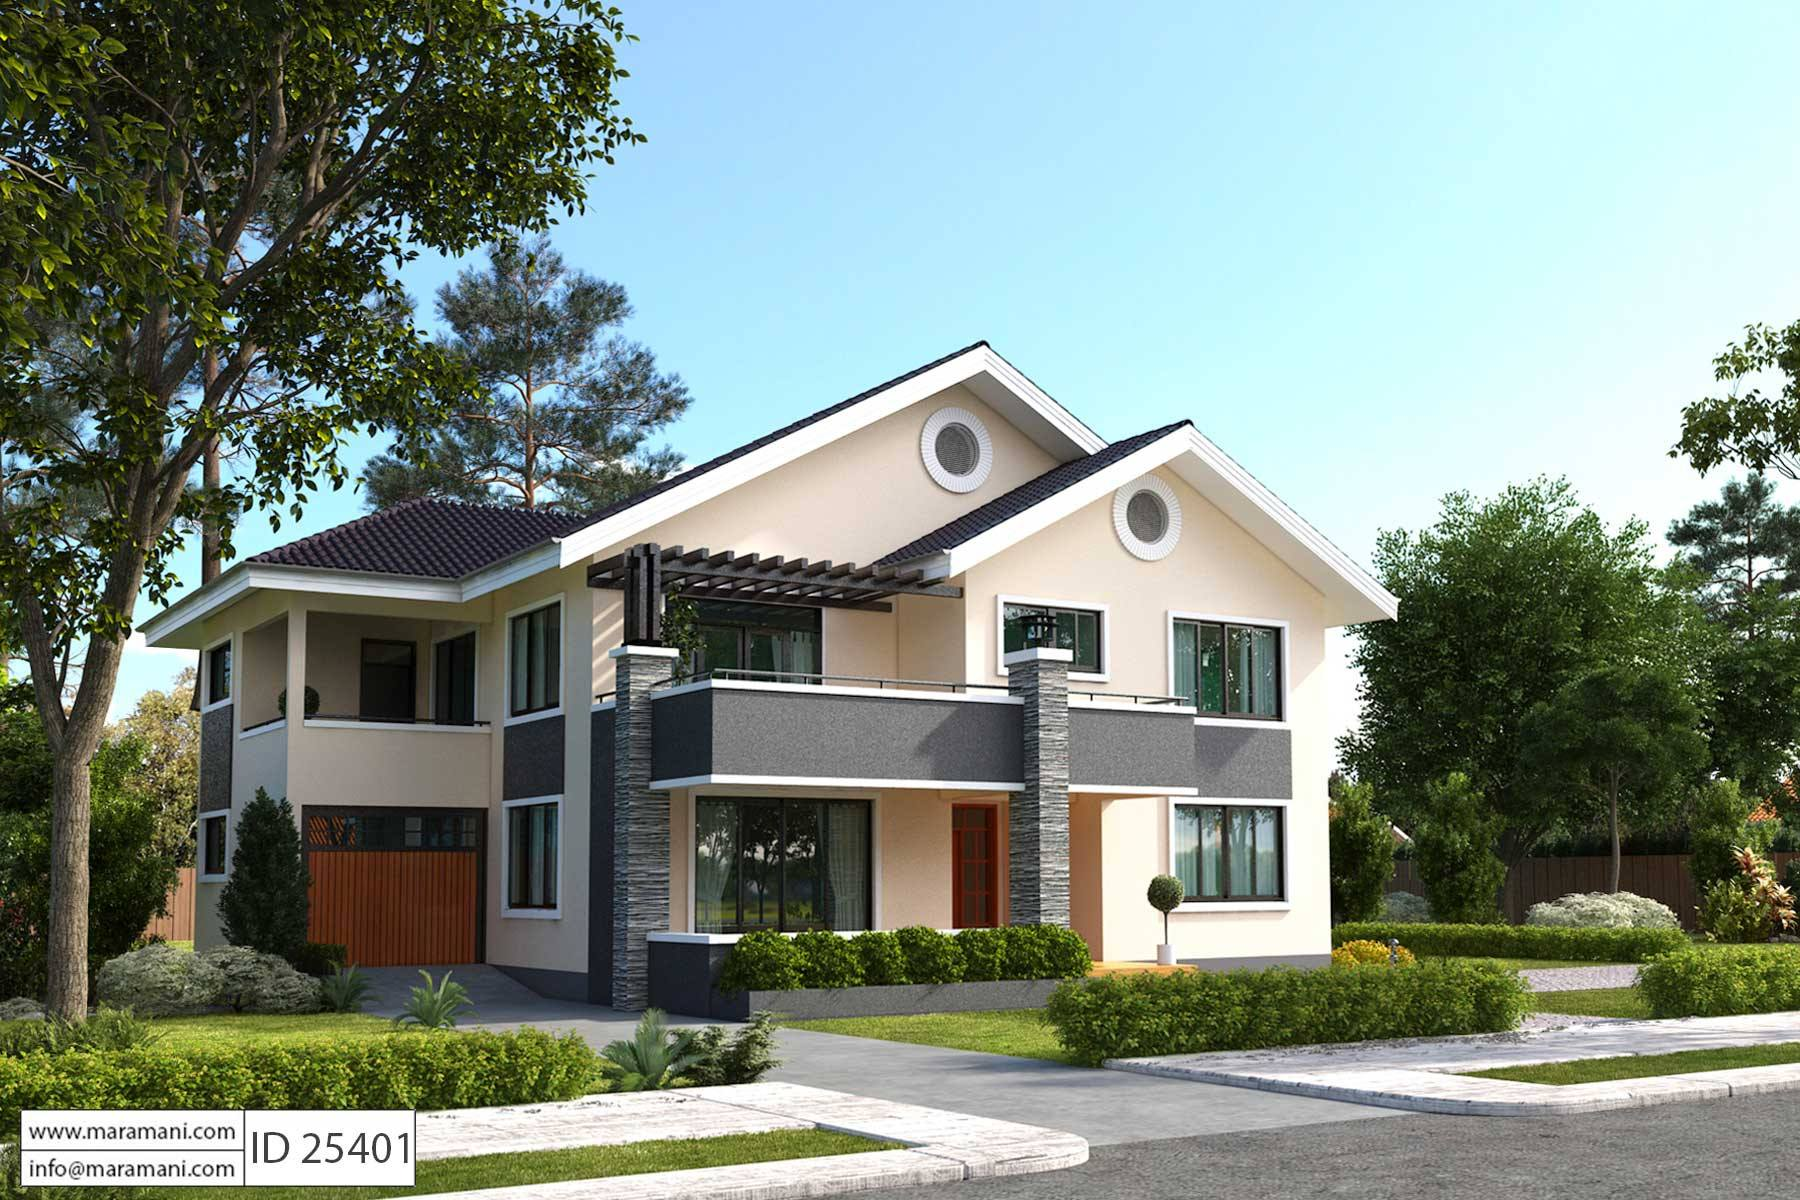 5 bedroom maisonette house plans in kenya for Idaho house plans